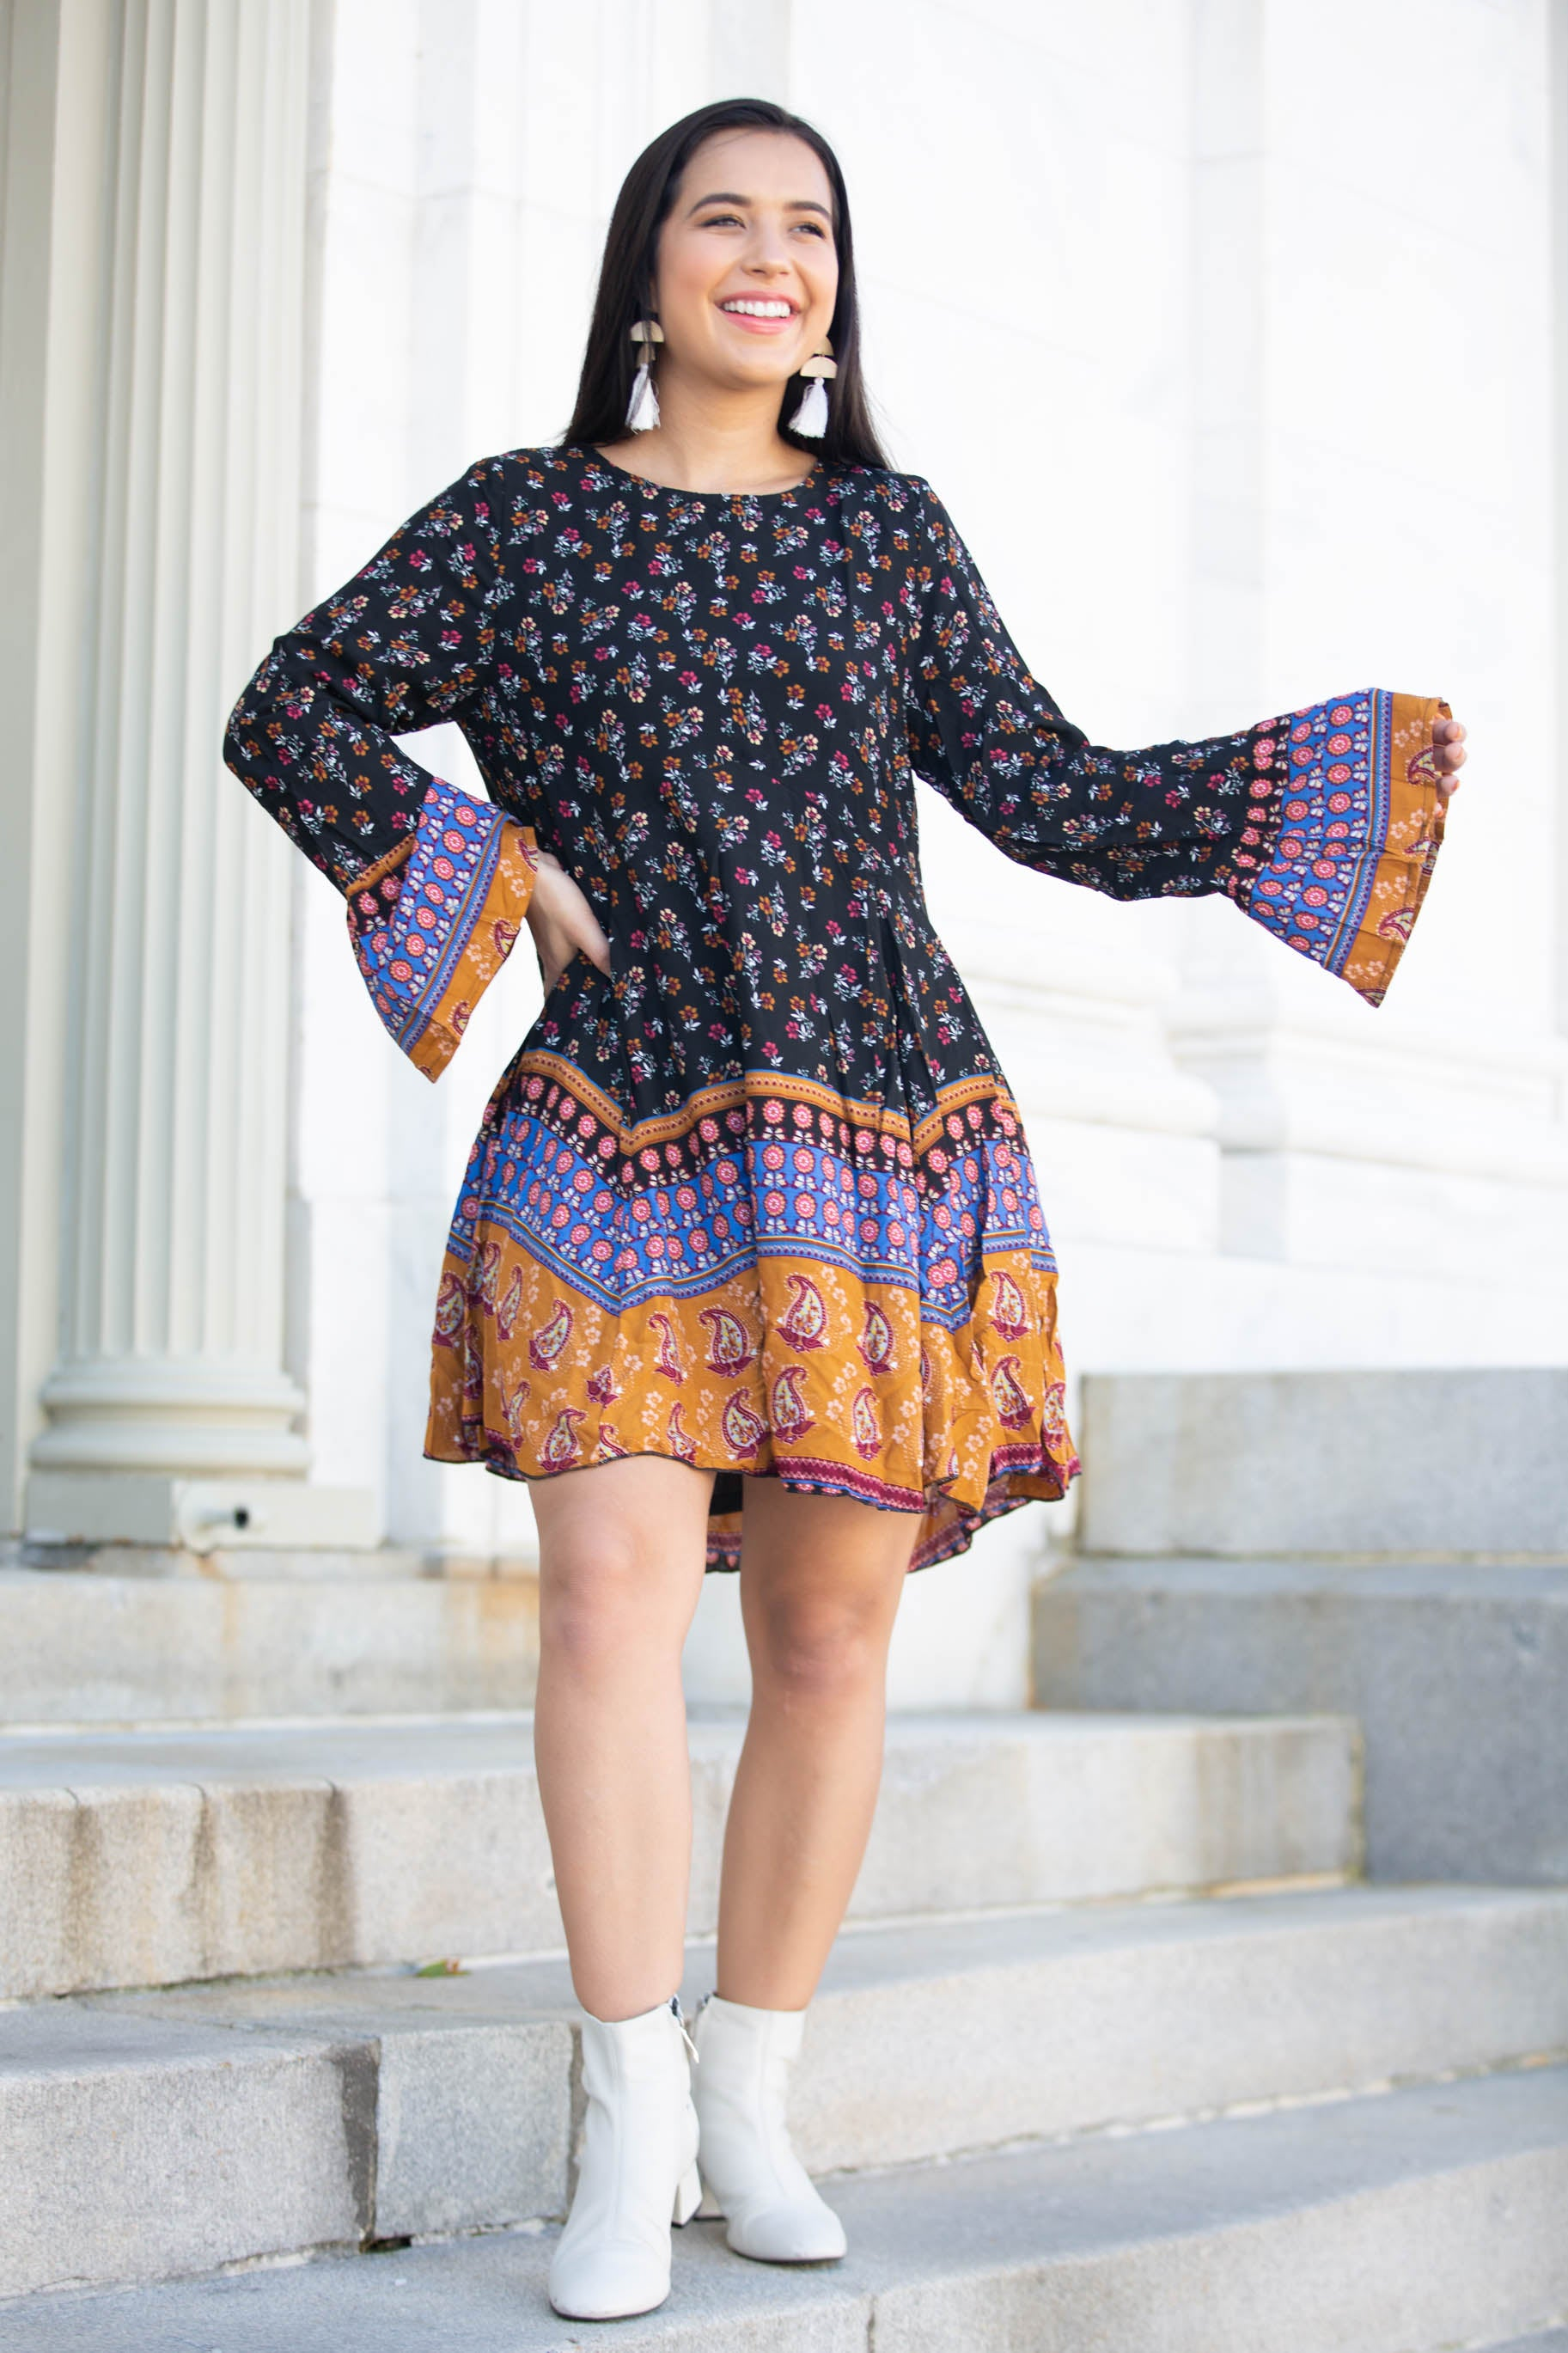 Autumn Nights Multi-Patterned Dress - The Flawless Babe Boutique